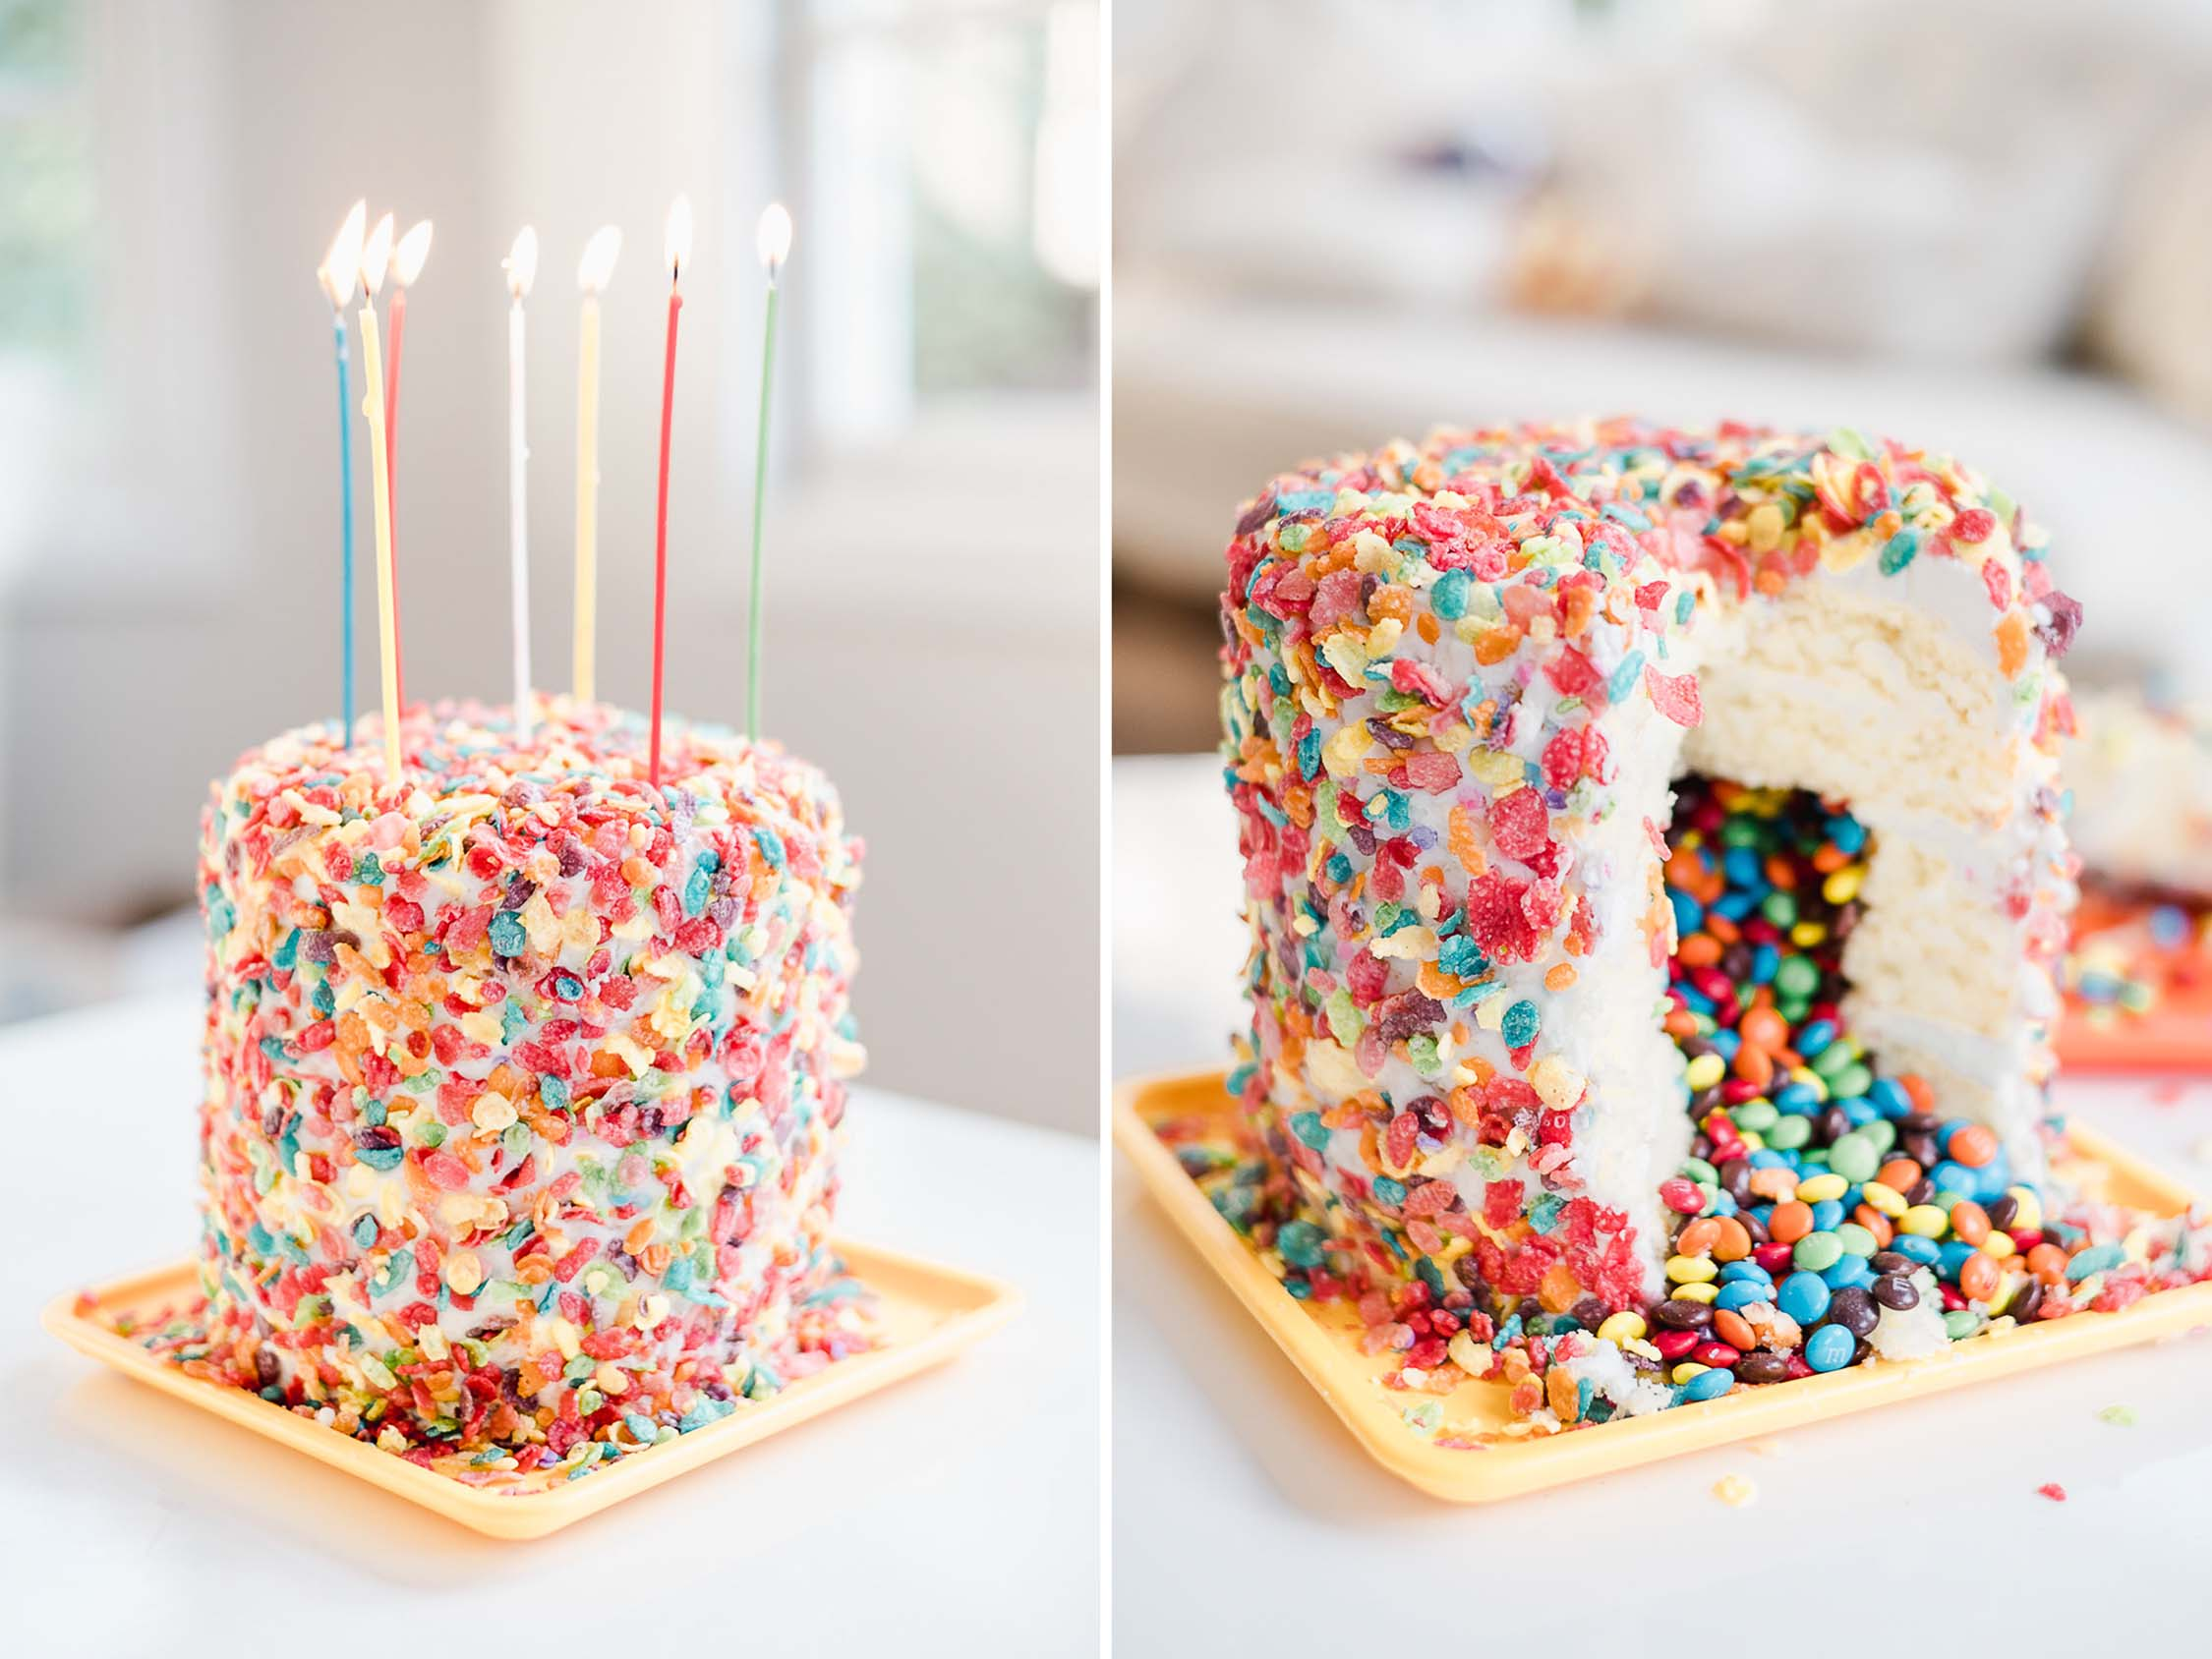 Diy Candy Surprise Inside Birthday Cake